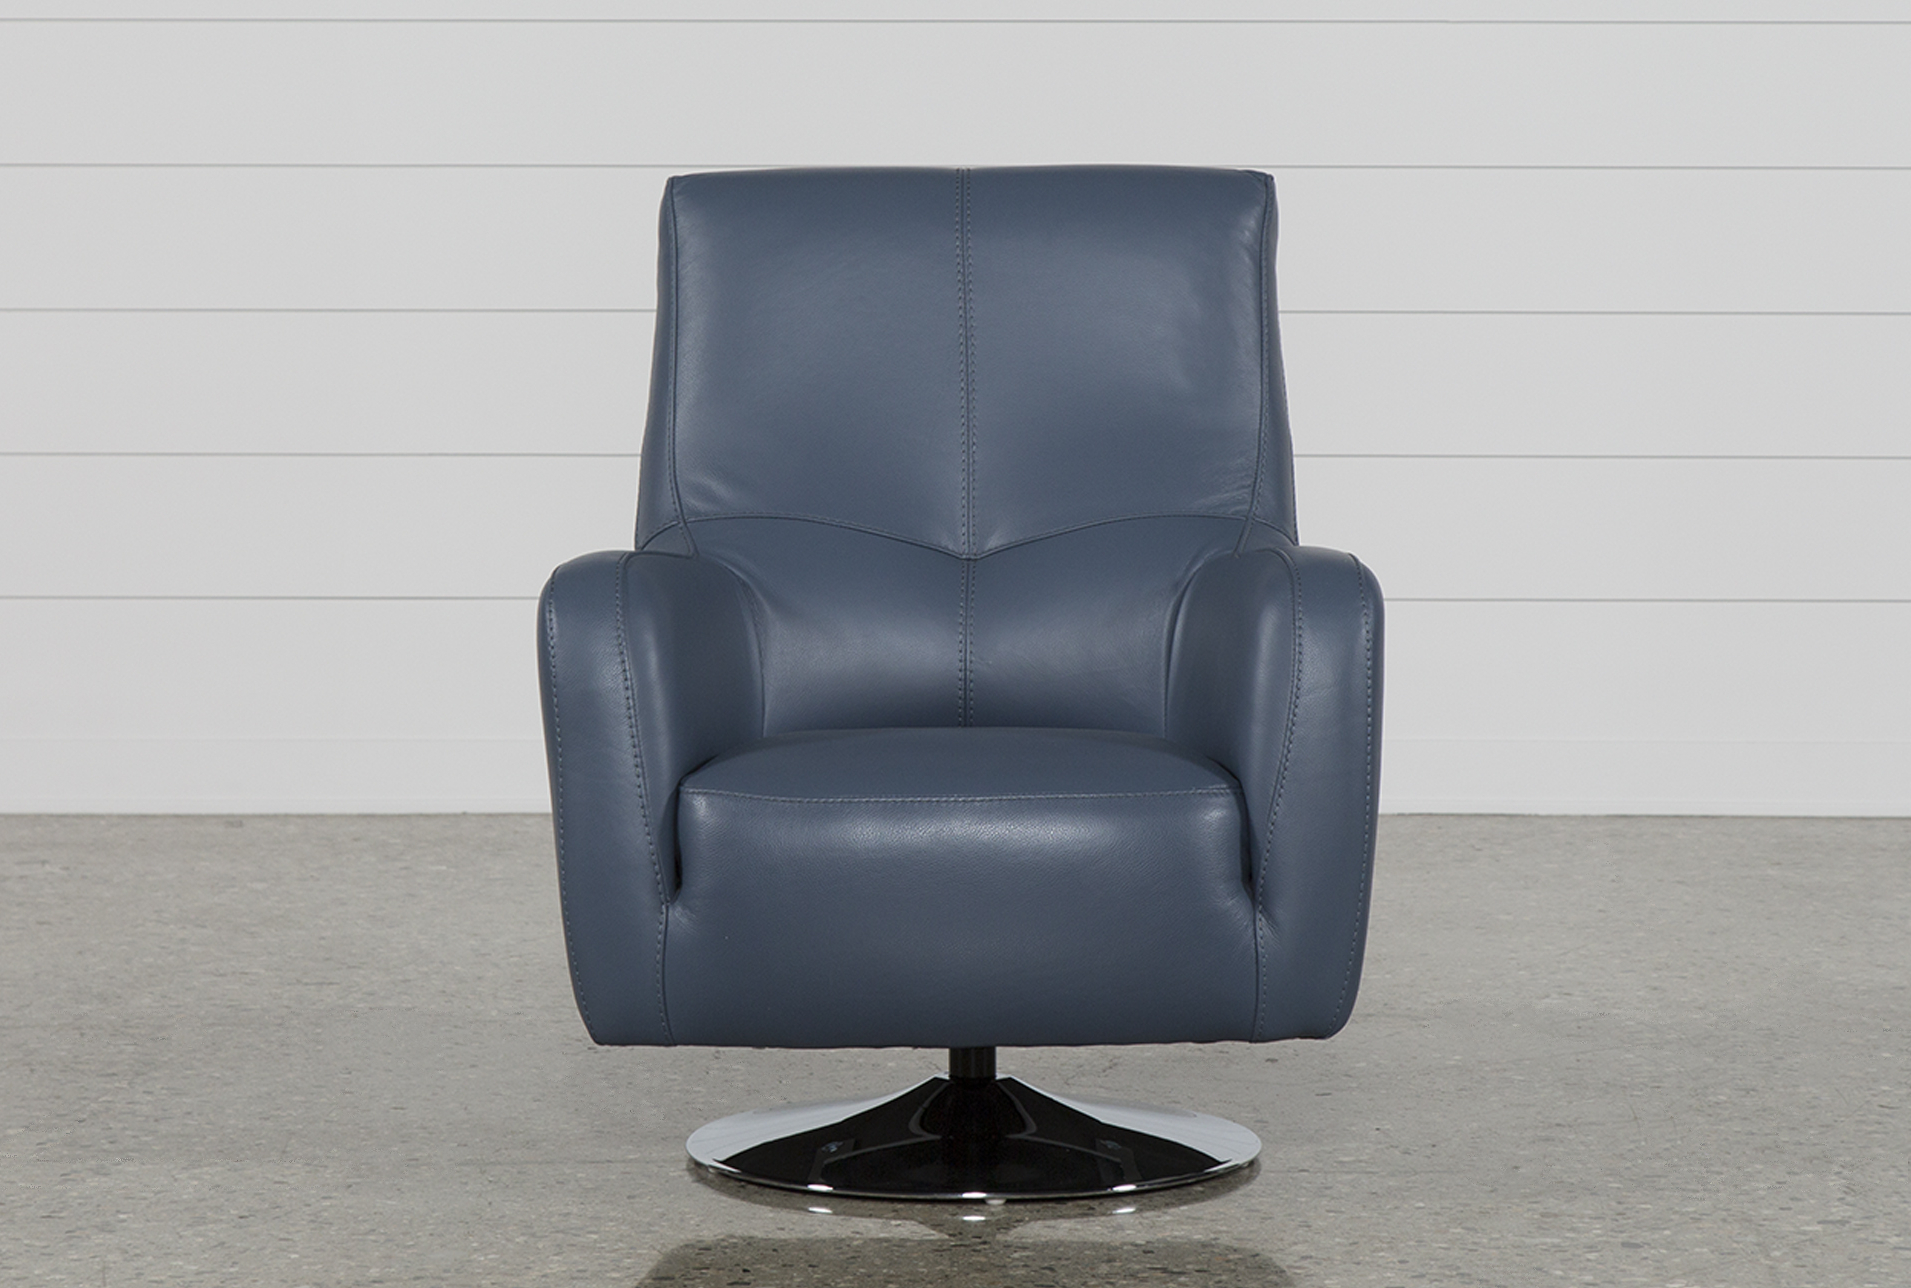 Amala White Leather Reclining Swivel Chairs In Well Known Kawai Leather Swivel Chair (Gallery 7 of 20)